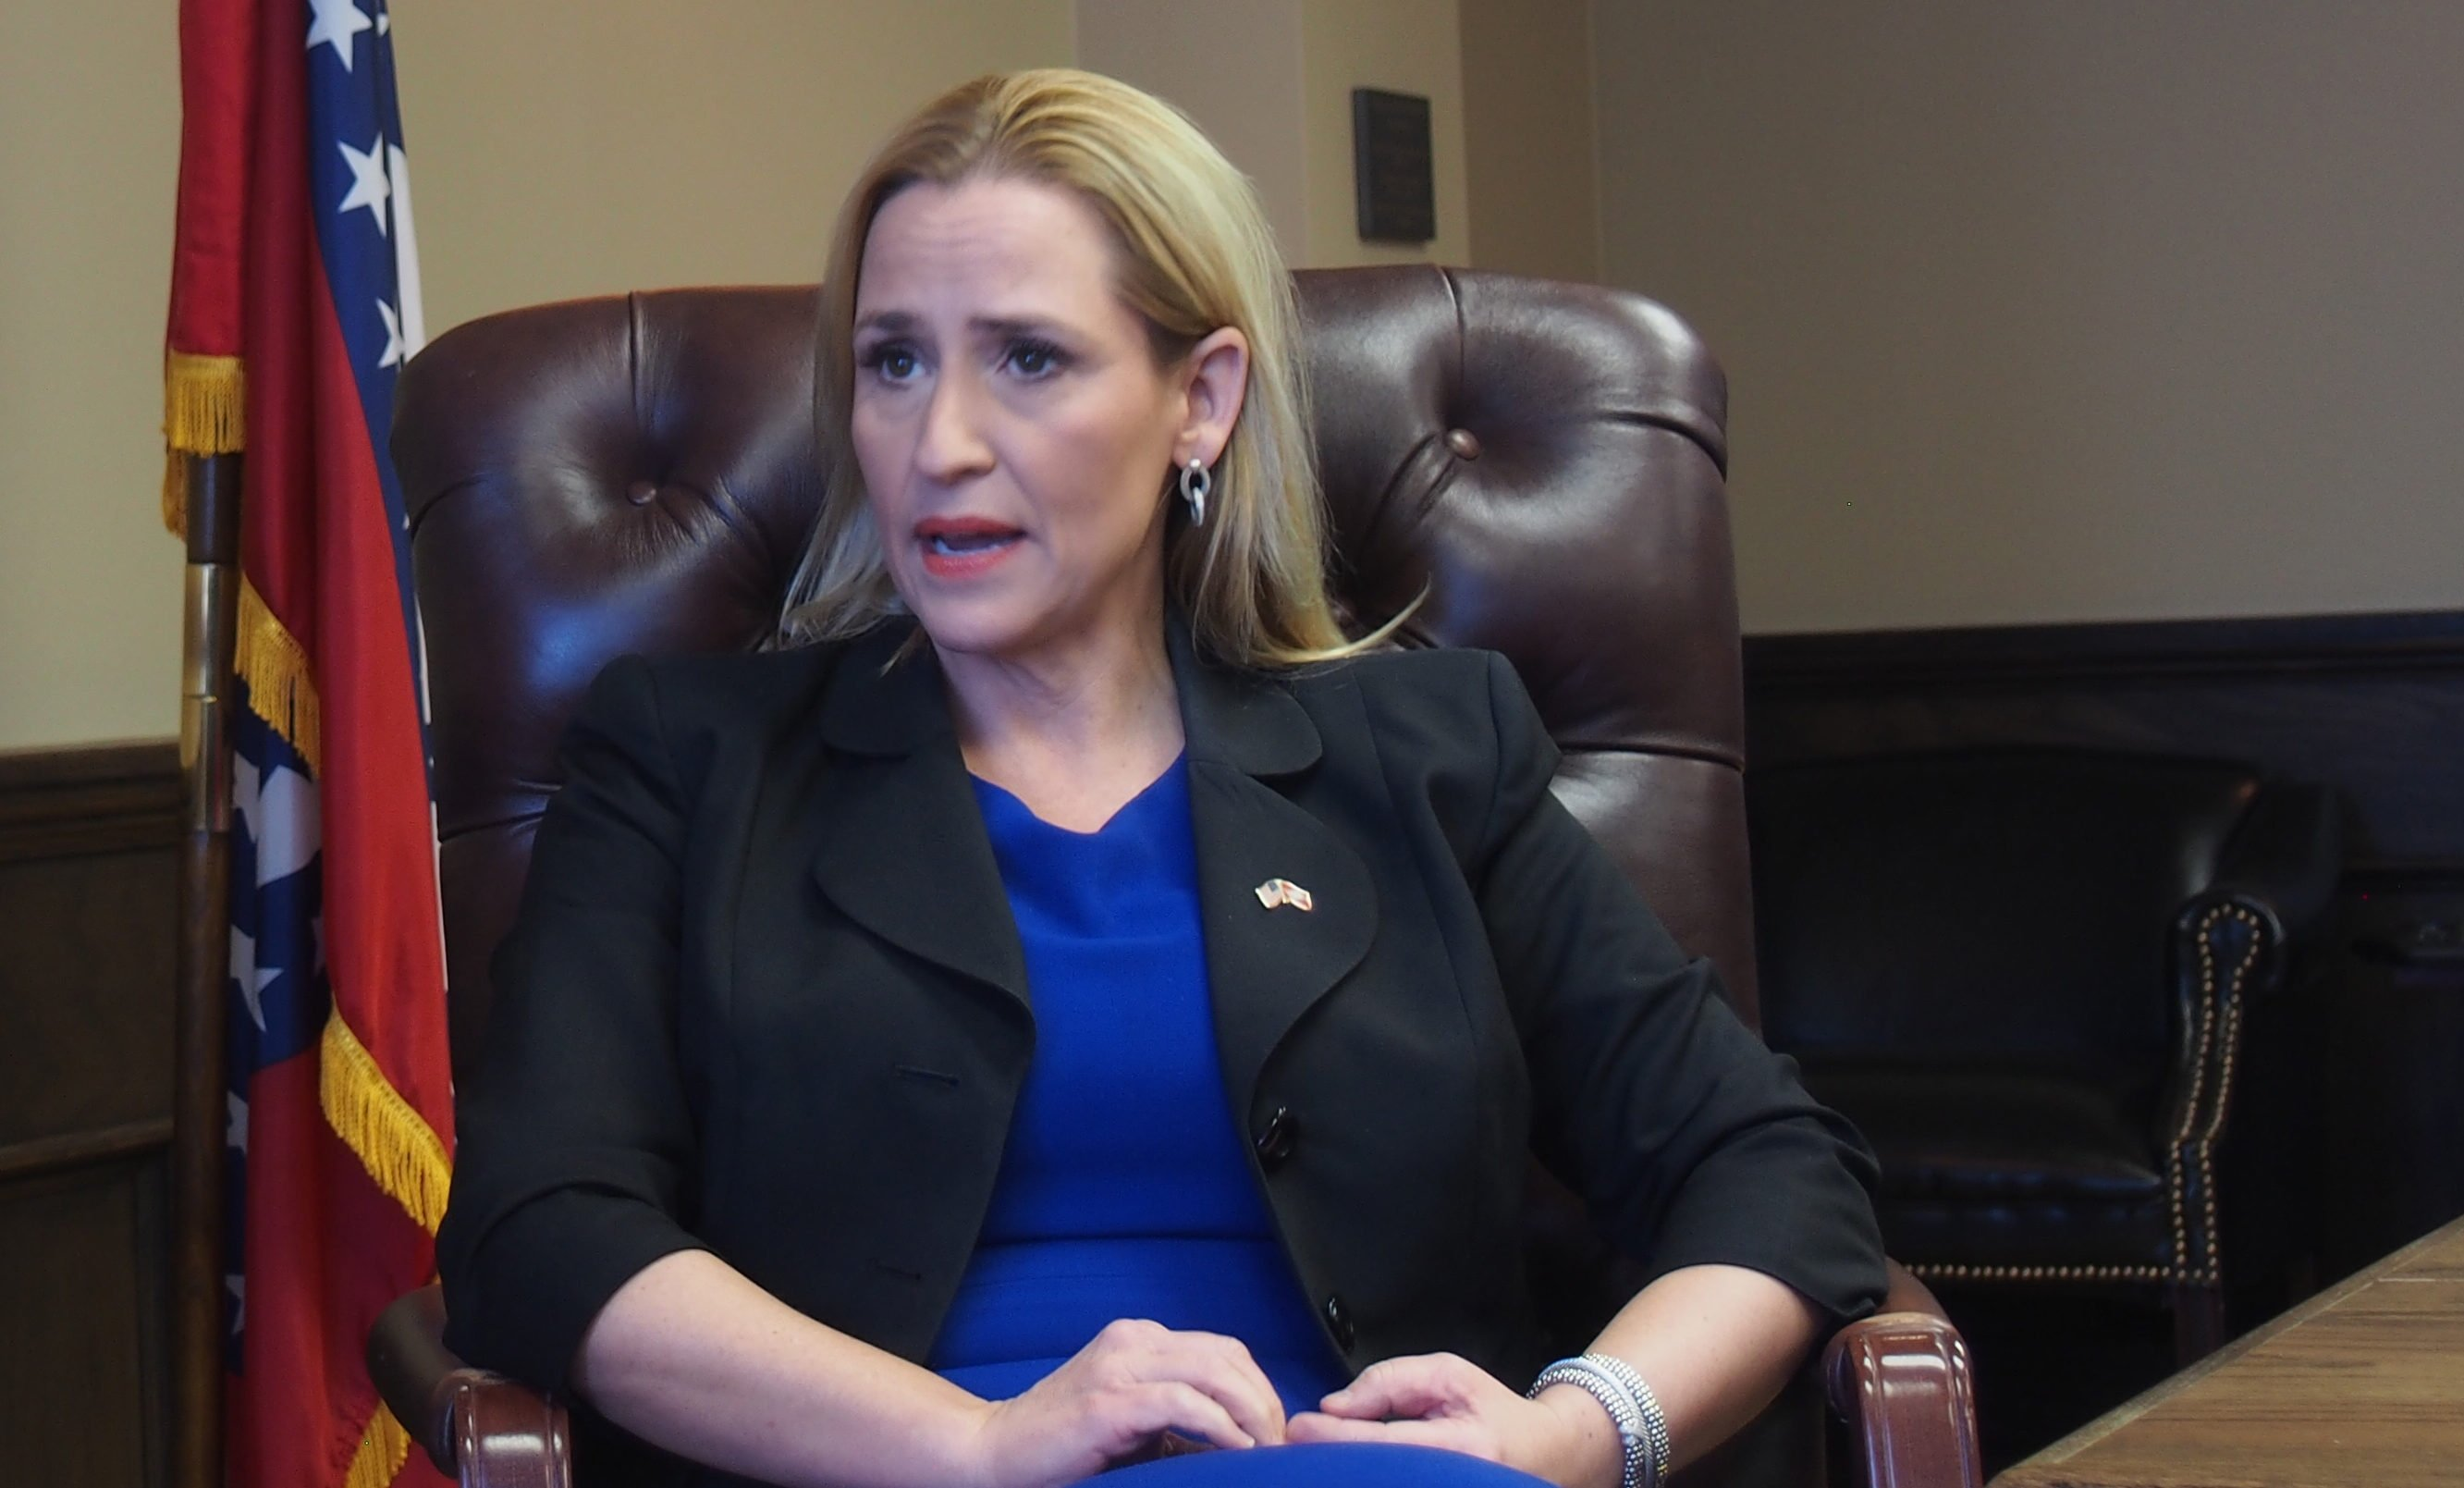 Arkansas Attorney General Leslie Rutledge during AMP interview on October